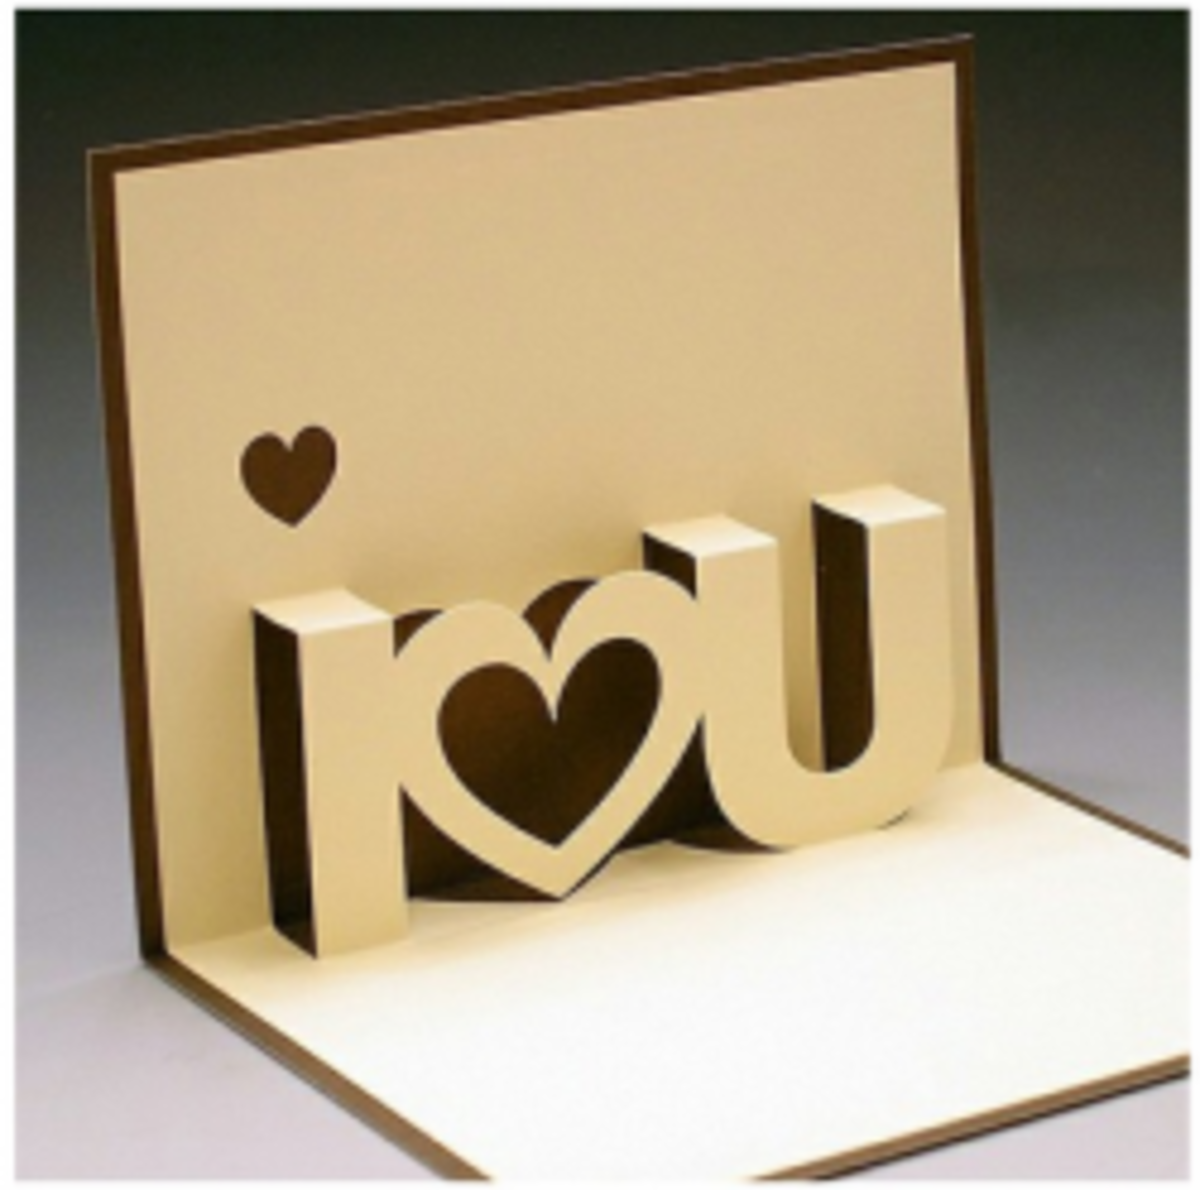 Look At This Unique Pop Up Card You Can Make Yourself For Valentine's Day.  Photo Credit:  Martha Stewart Via Six In The Suburbs